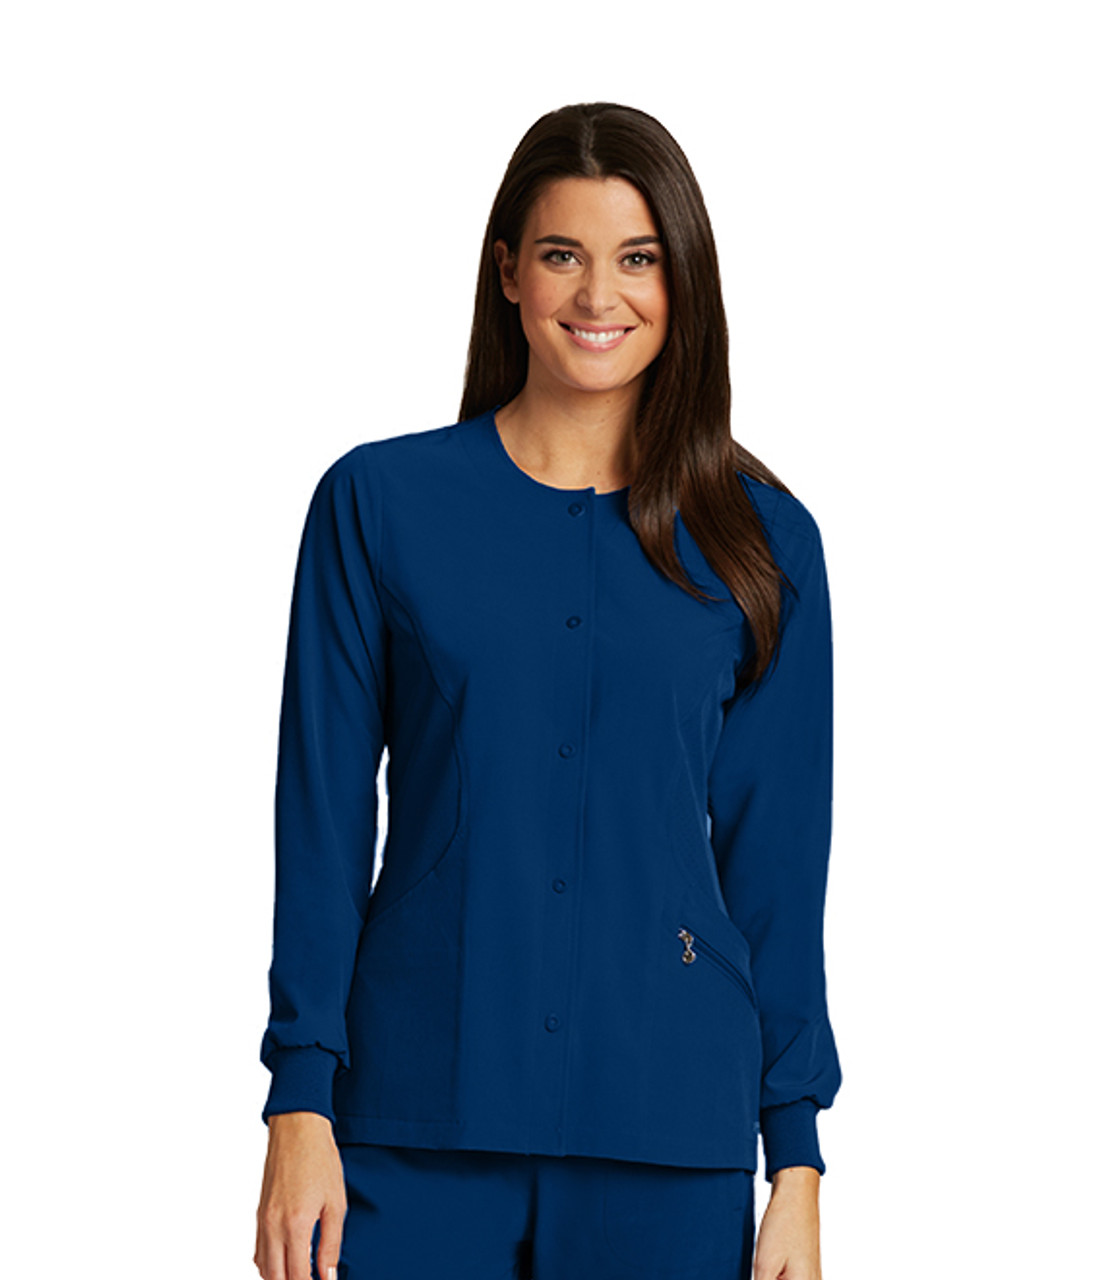 (5409) Barco One Scrubs - 4pkt Perforated Princess Warmup